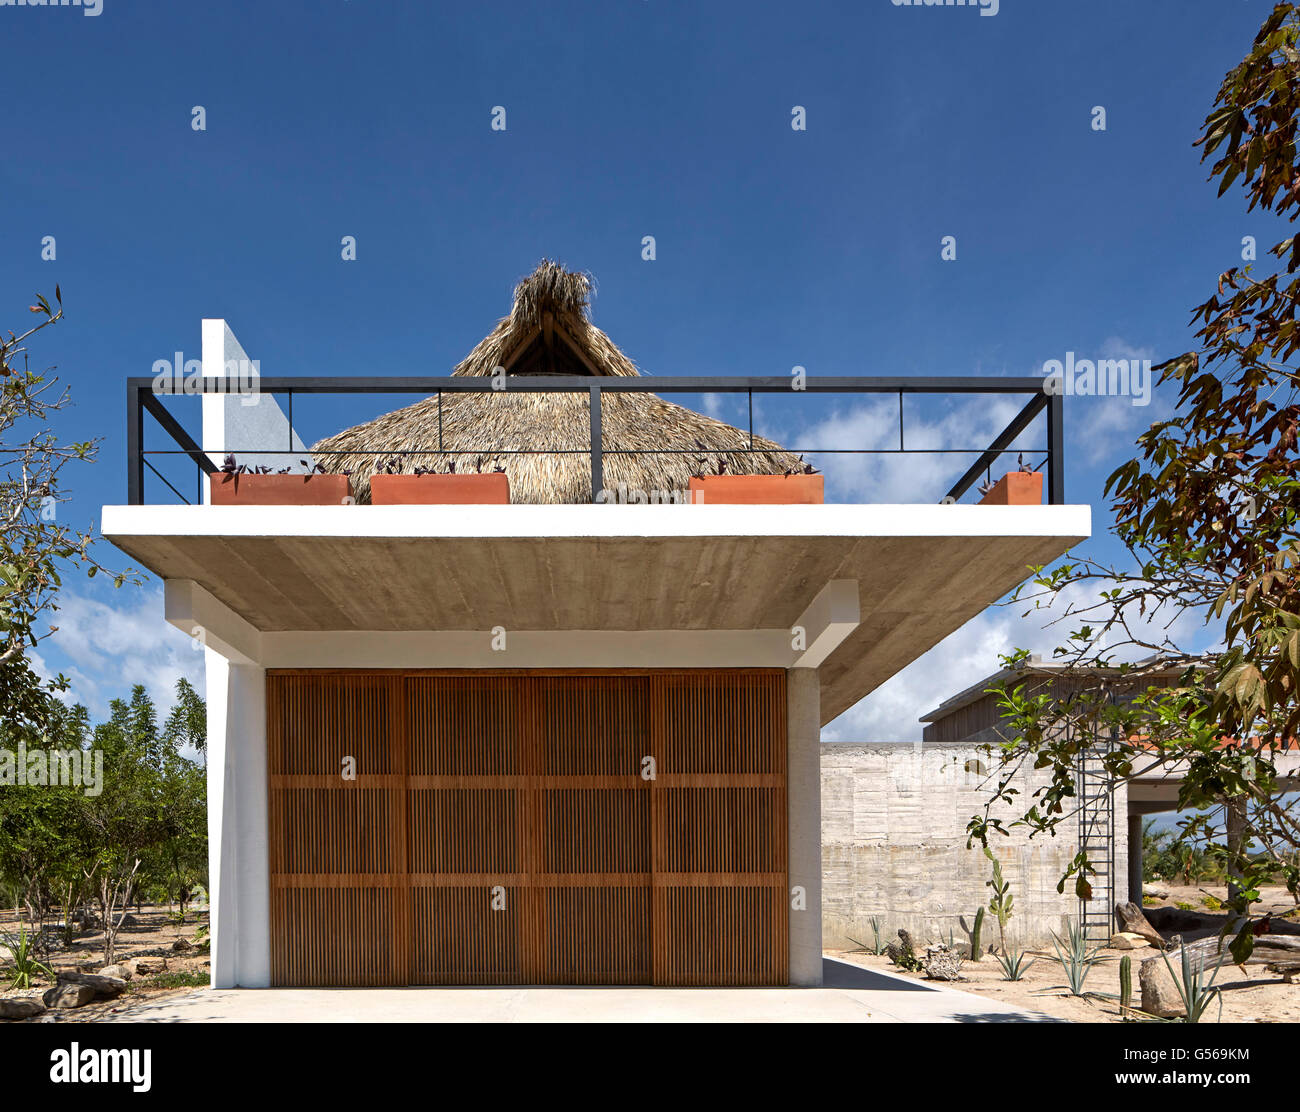 Overall exterior view from side. Casa Cal, Puerto Escondido, Mexico. Architect: BAAQ, 2015. - Stock Image